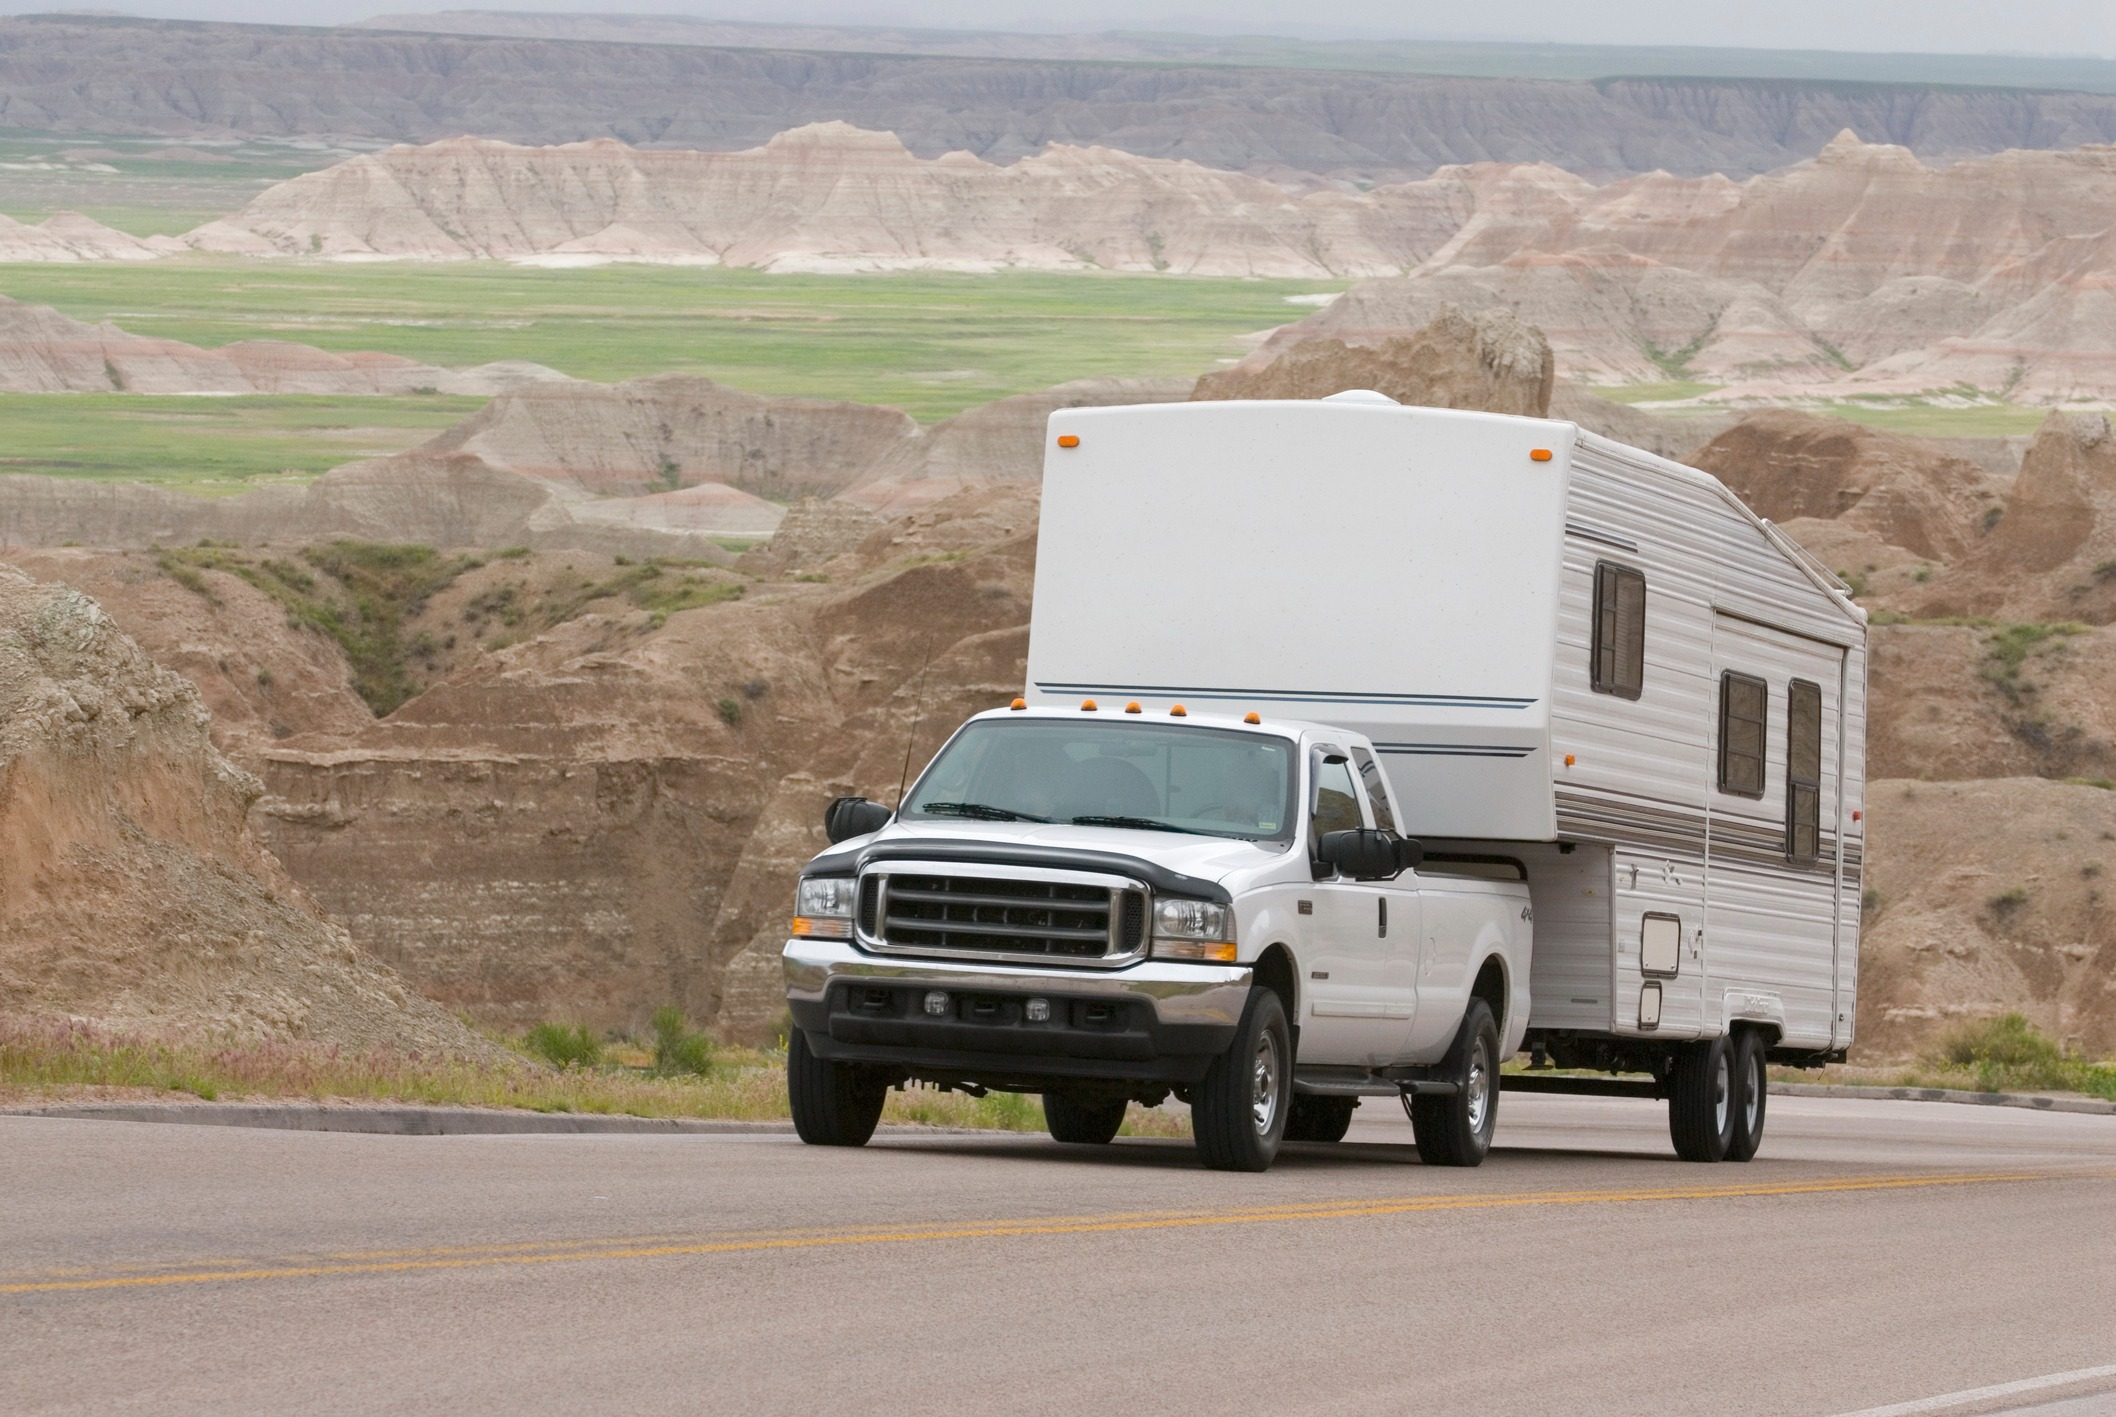 RV trailer in the badlands